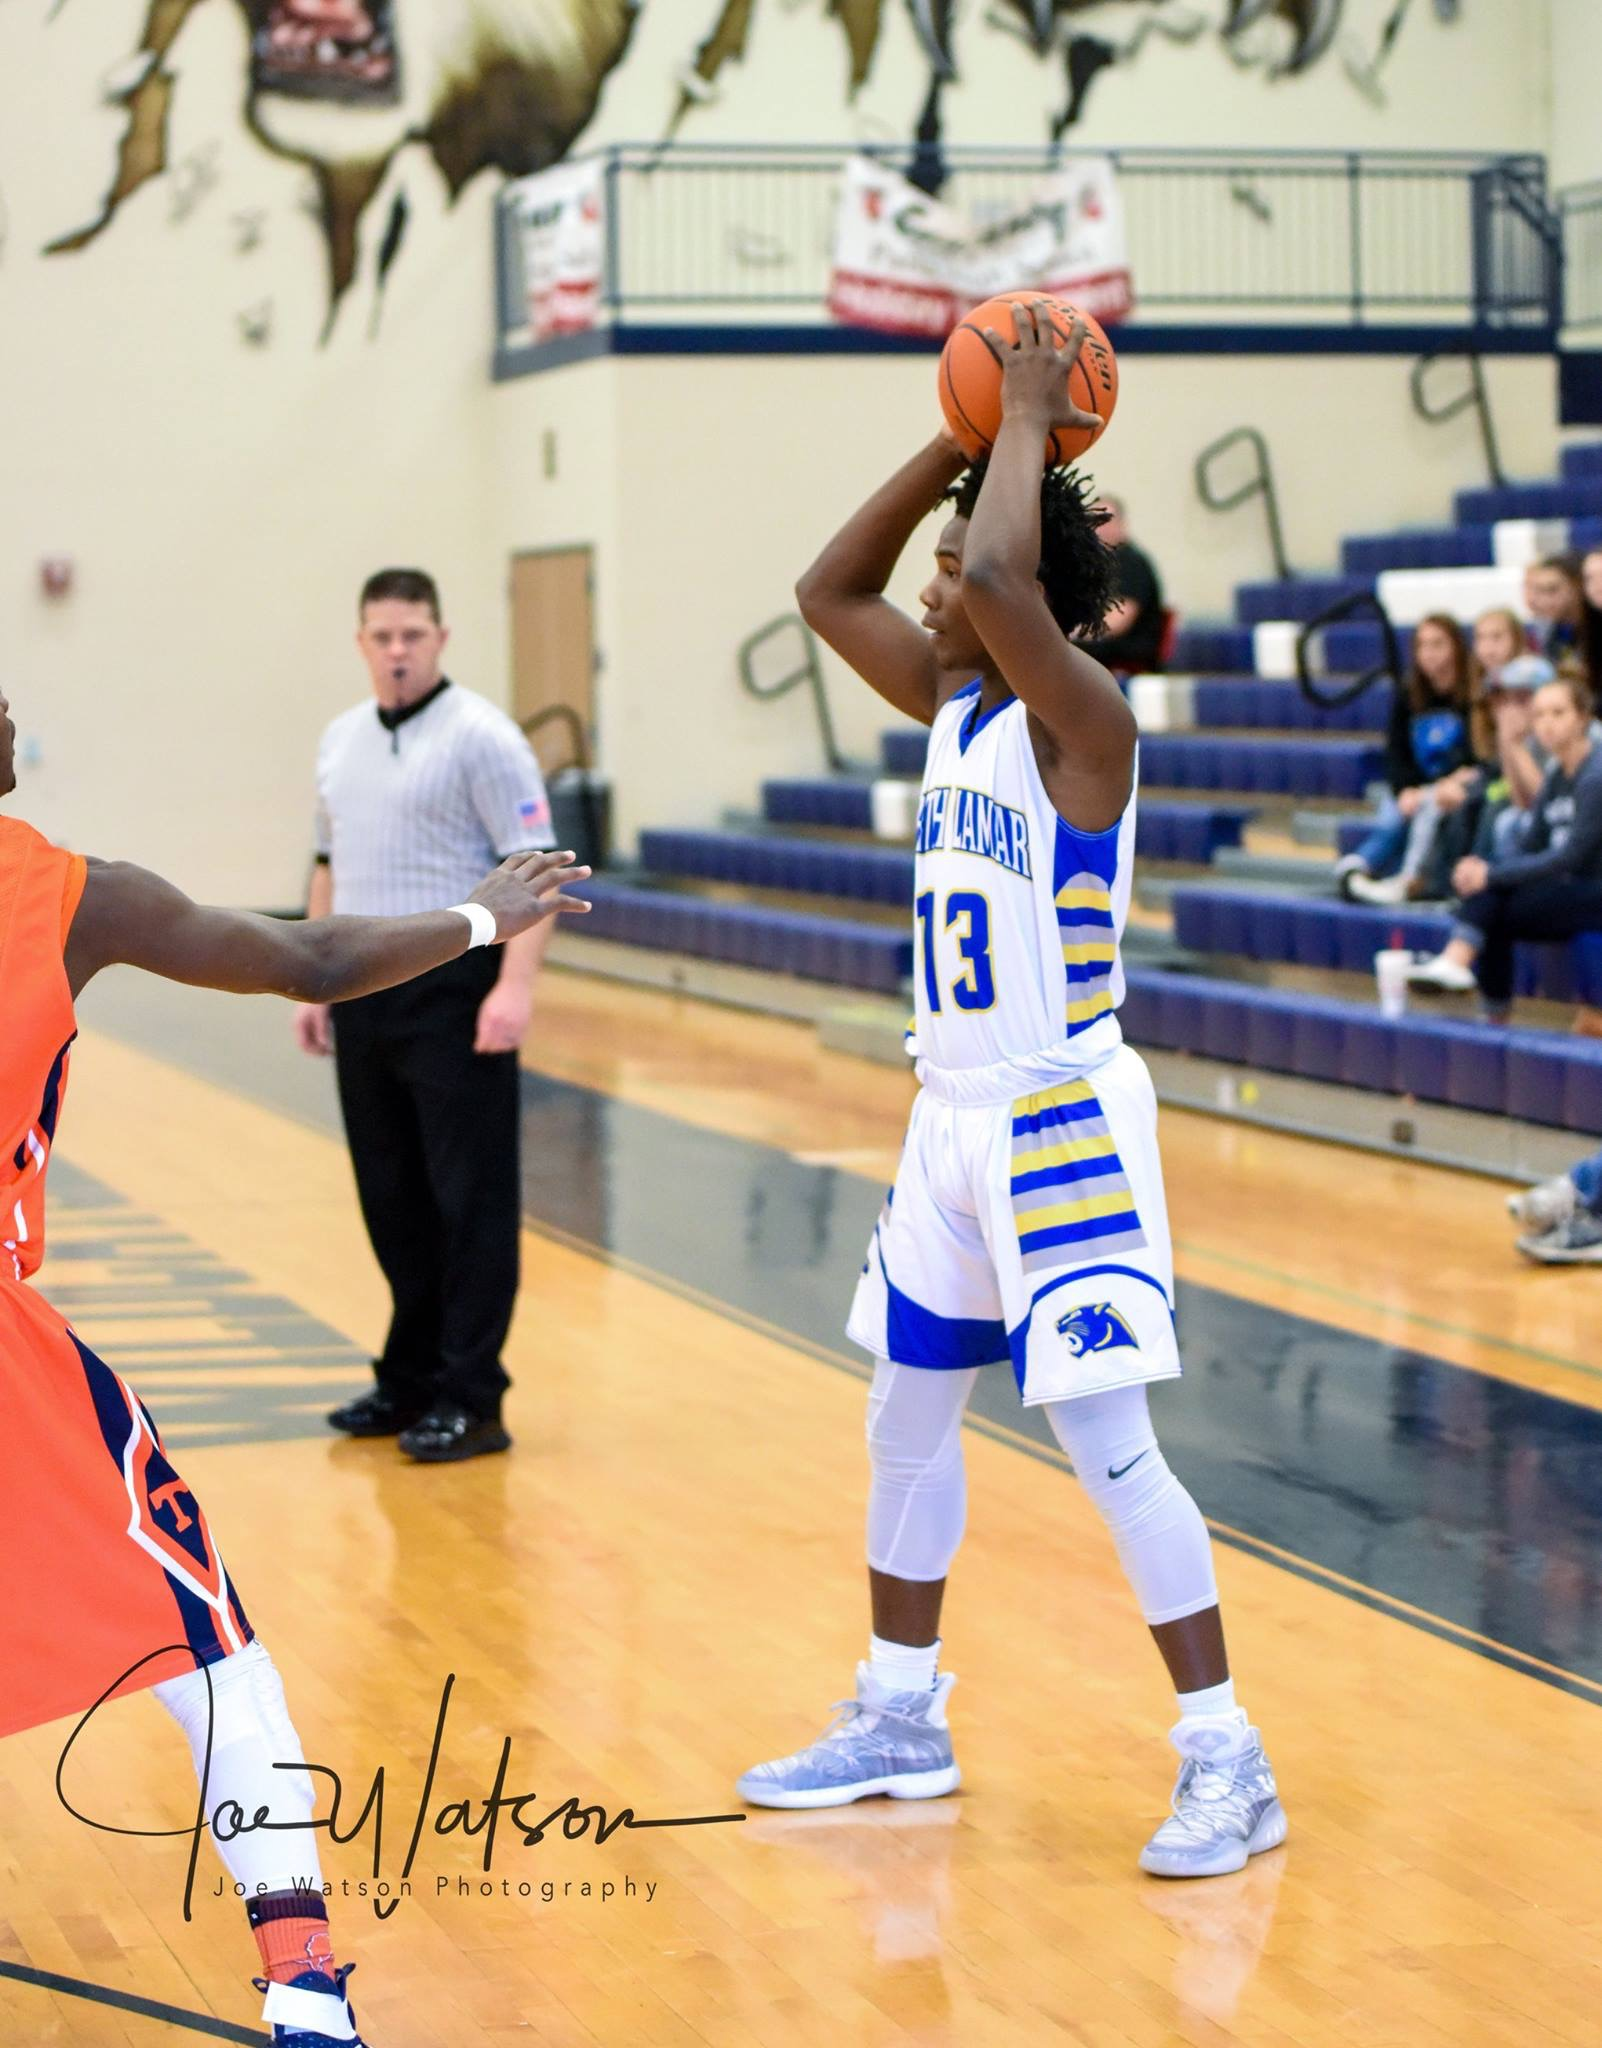 (Photo by Joe Watson) Menderiz Gray looking to pass the ball in a game earlier this season.